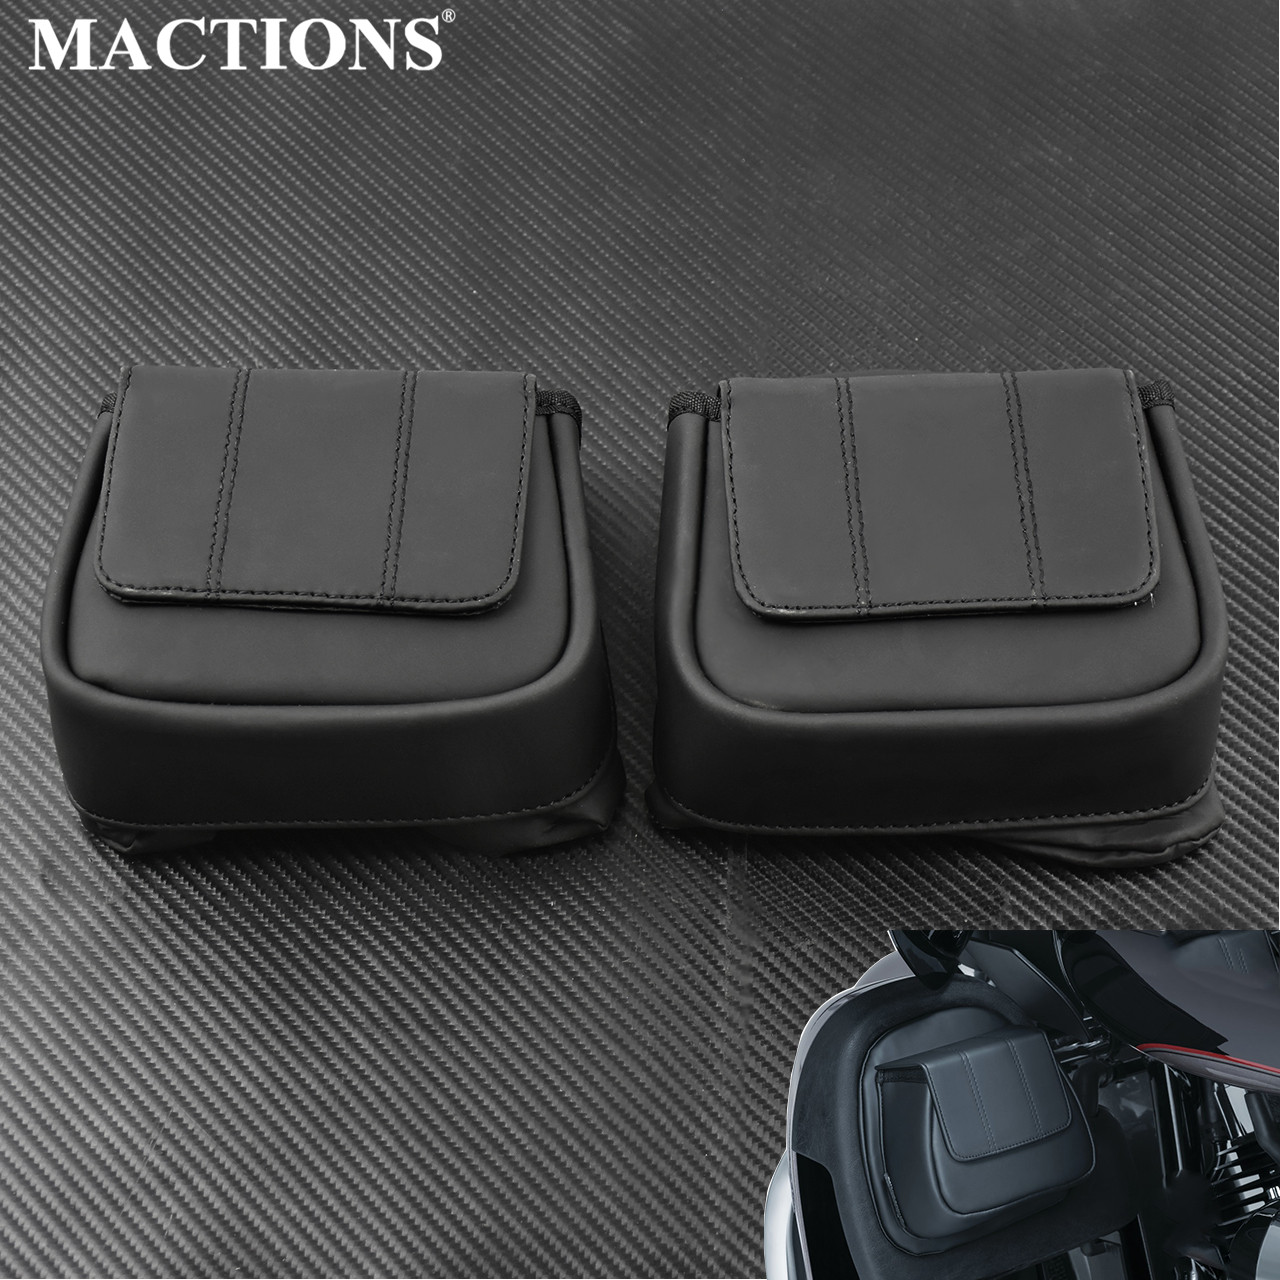 Motorcycle Lower Vented Leg Fairing Glove Box Tool Bag For Harley Touring Street Glide Road Glide